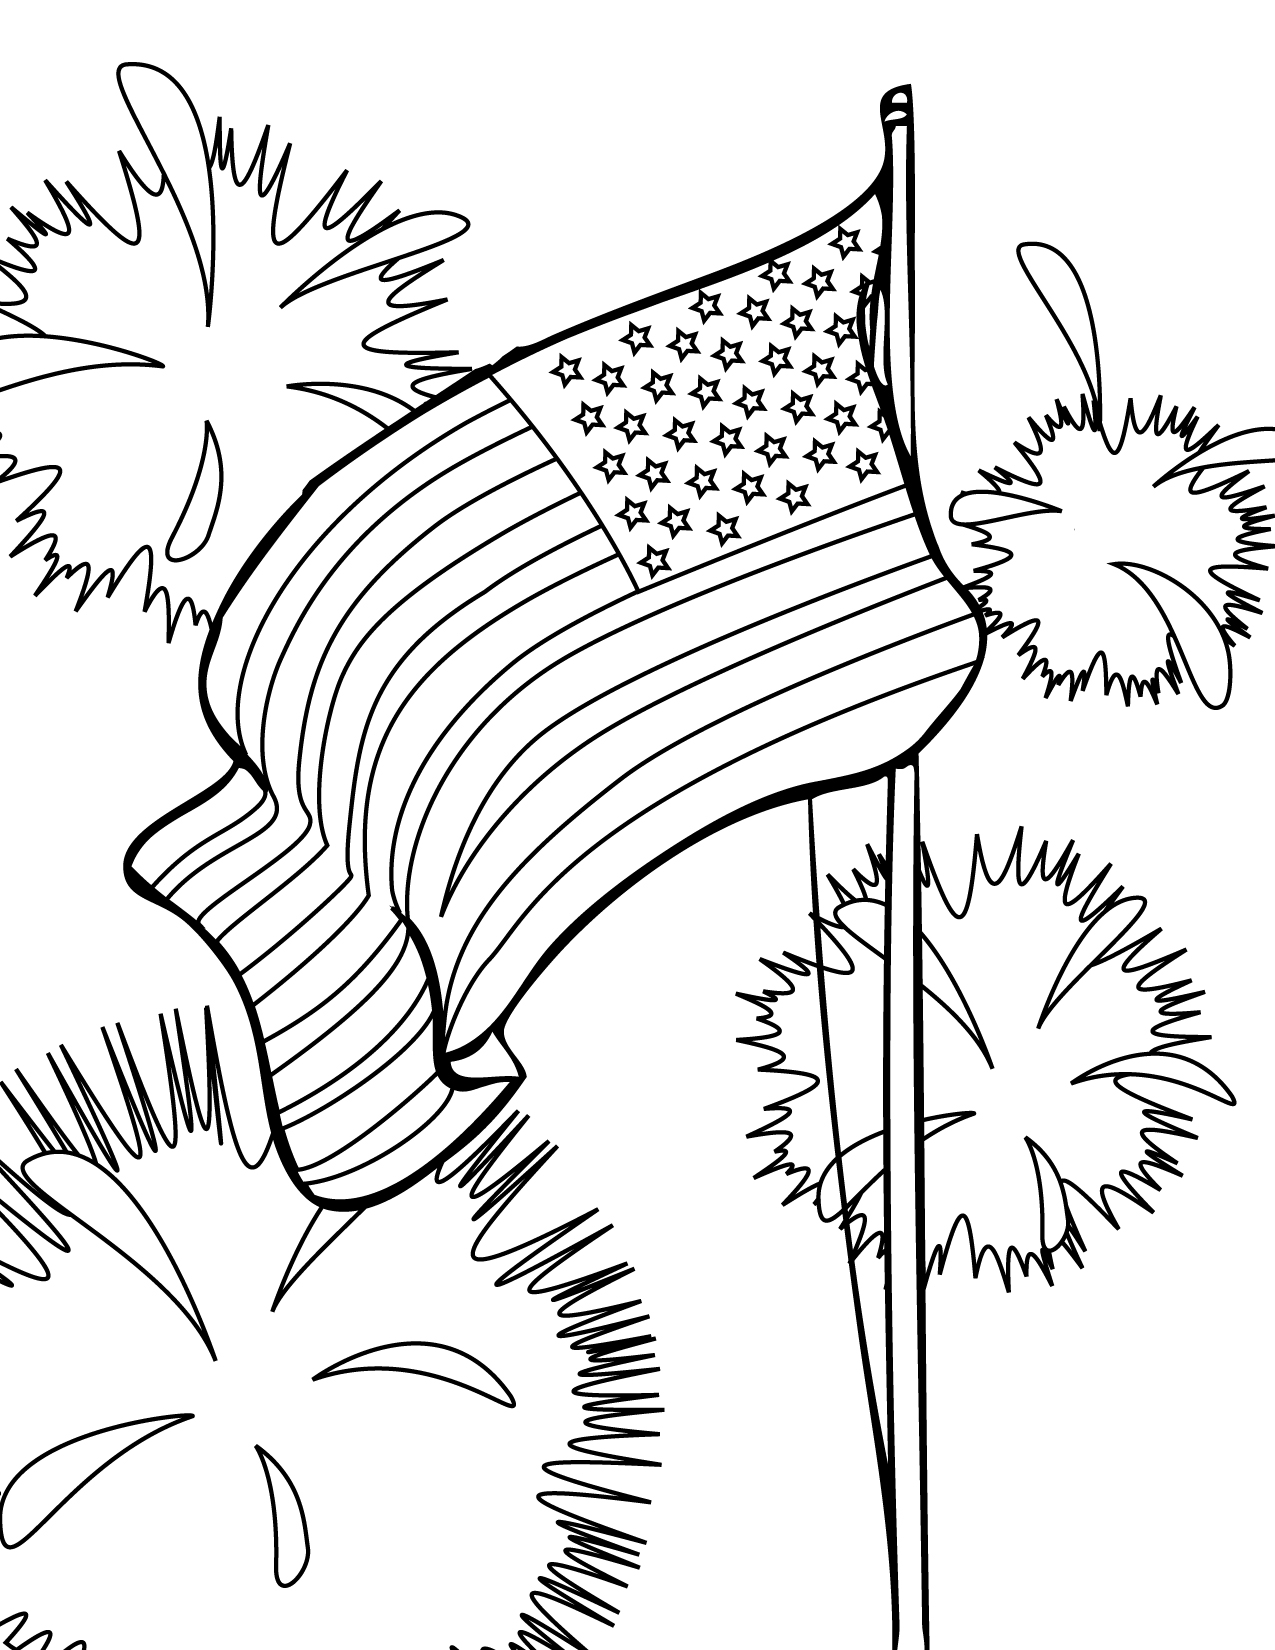 Free coloring pages fourth of july - 4th Of July Coloring Pages American Flag